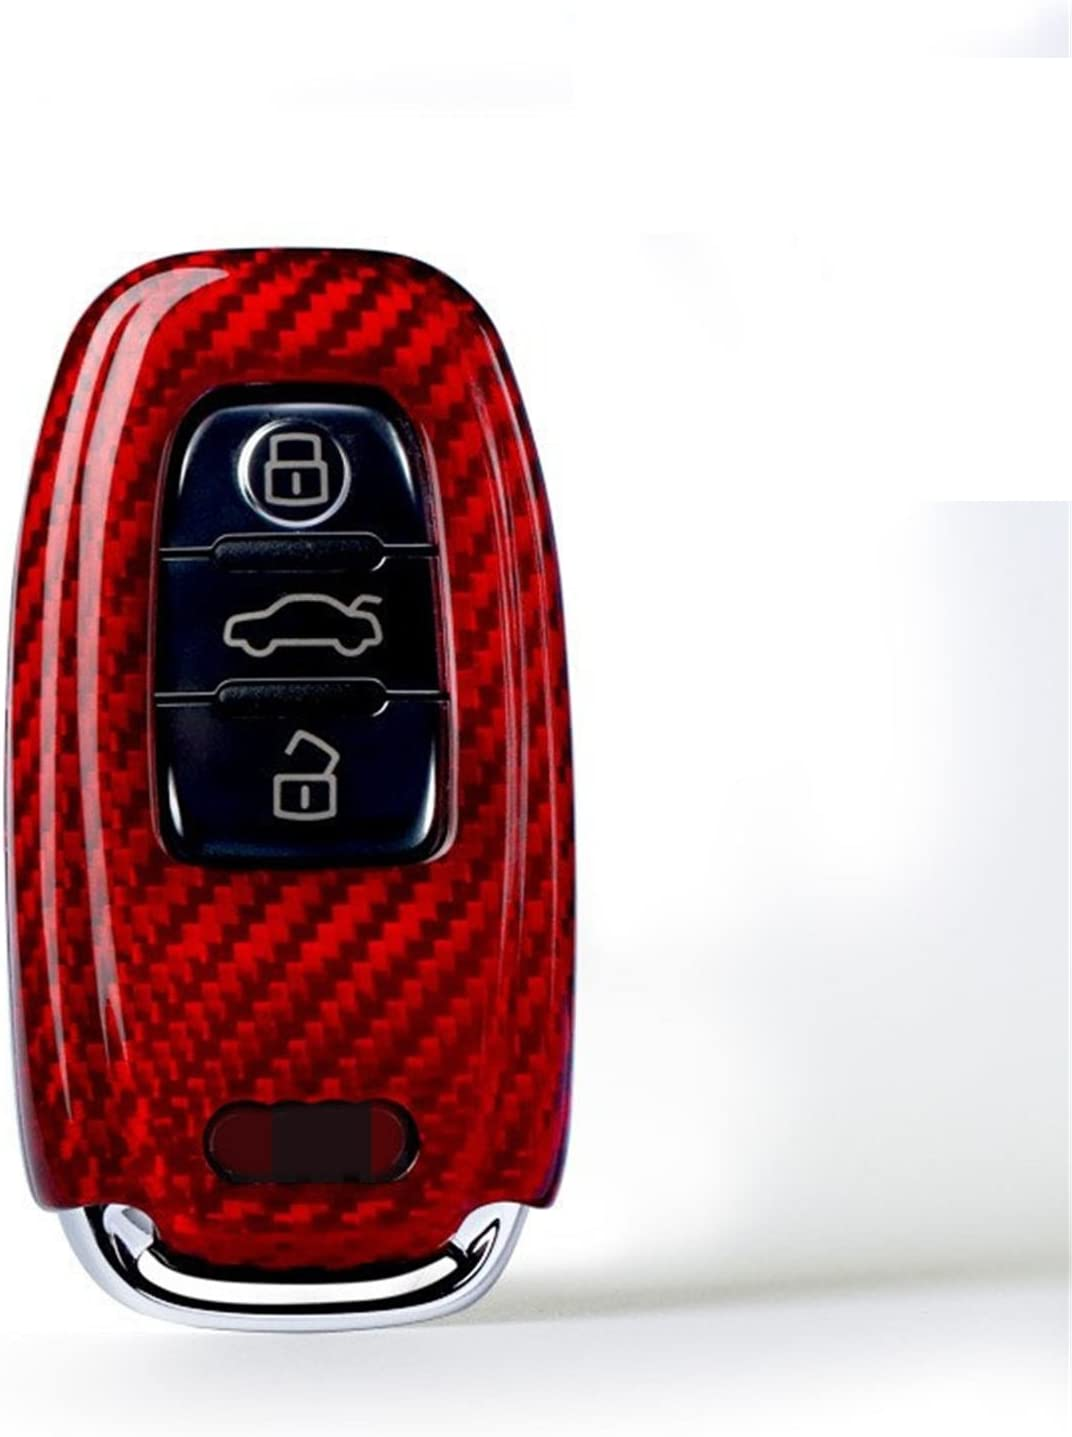 TANGSEN Smart Key Fob Case Red TPU Protective Cover for Audi A4 A5 A6 A7 A8 Q5 S5 S6 S7 S8 3 4 Button Keyless Entry Remote Control Accessories